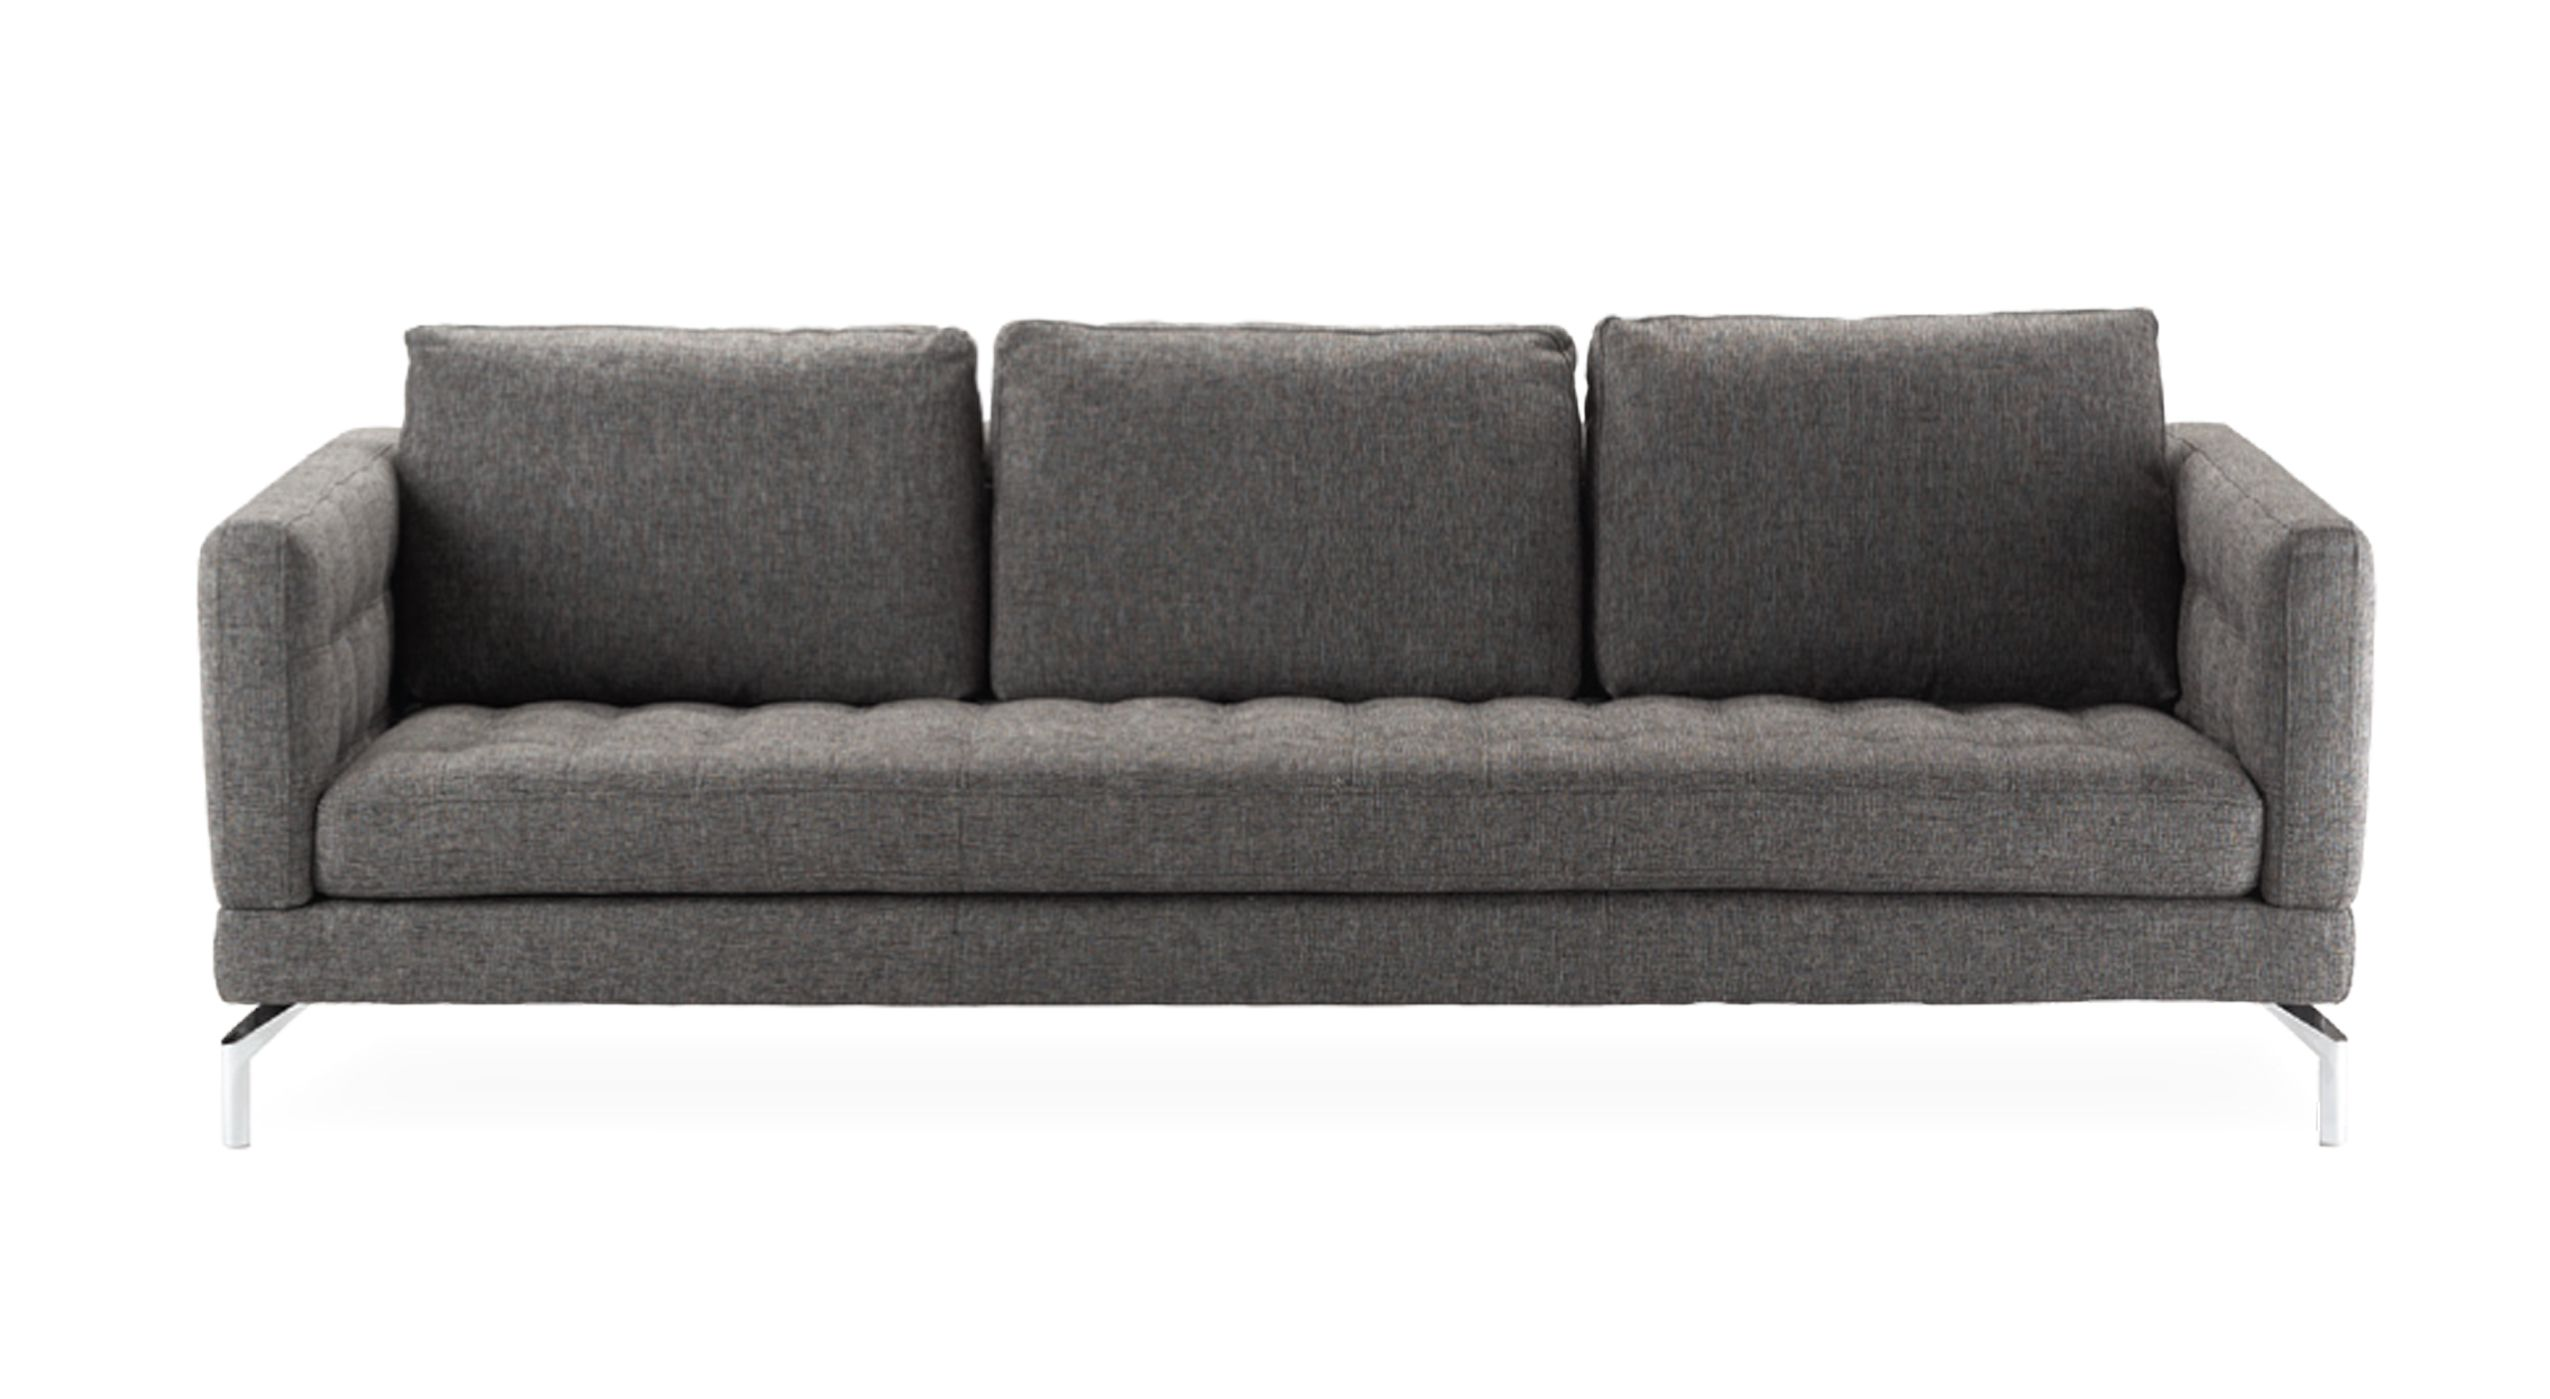 Arcadia Sofa In Charcoal Fabric Tufted Seat With Feather